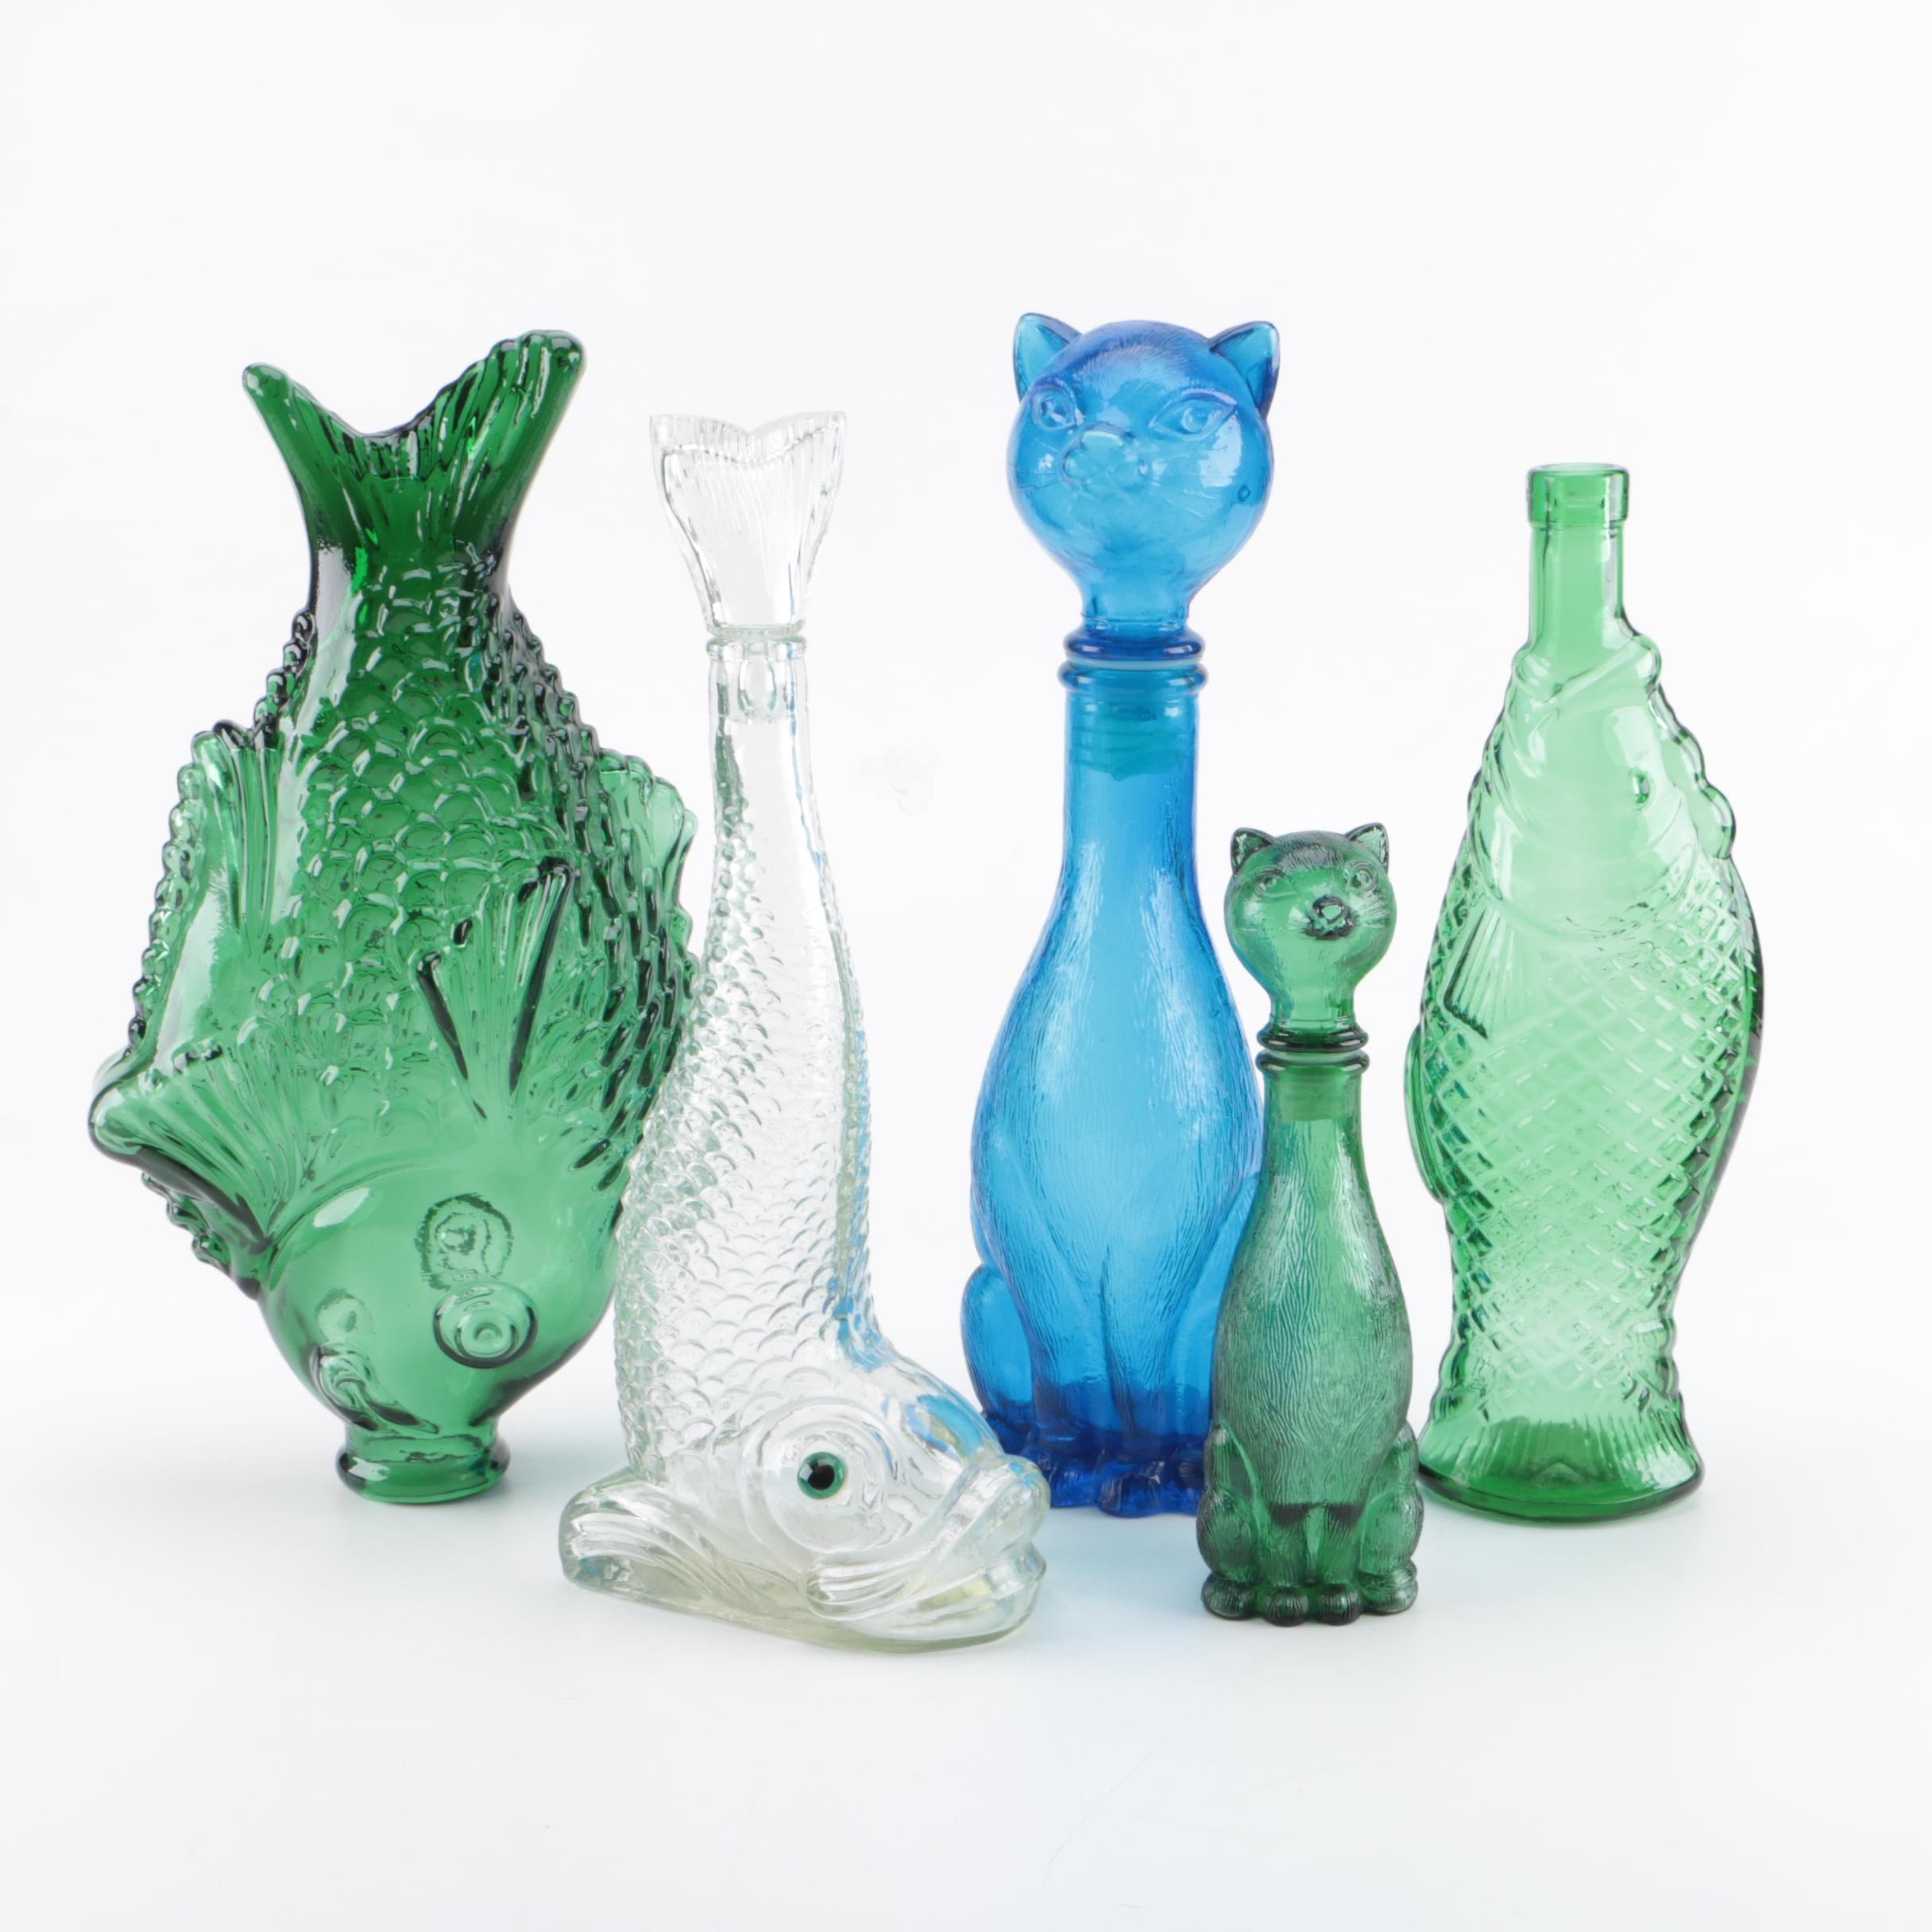 Molded Glass Fish and Cat Shaped Bottles